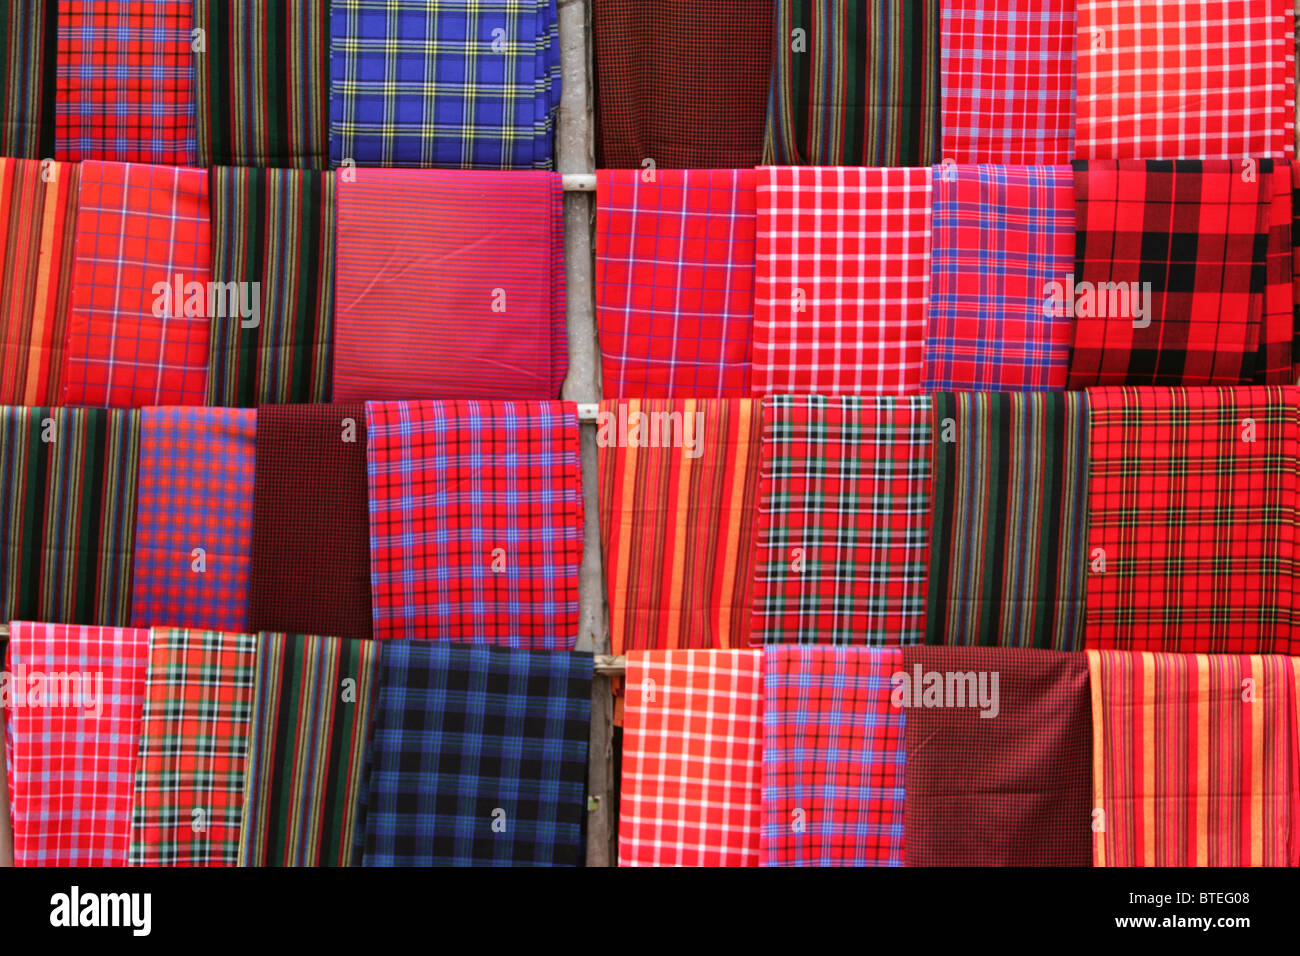 A display of brightly coloured shuka cloths - Stock Image